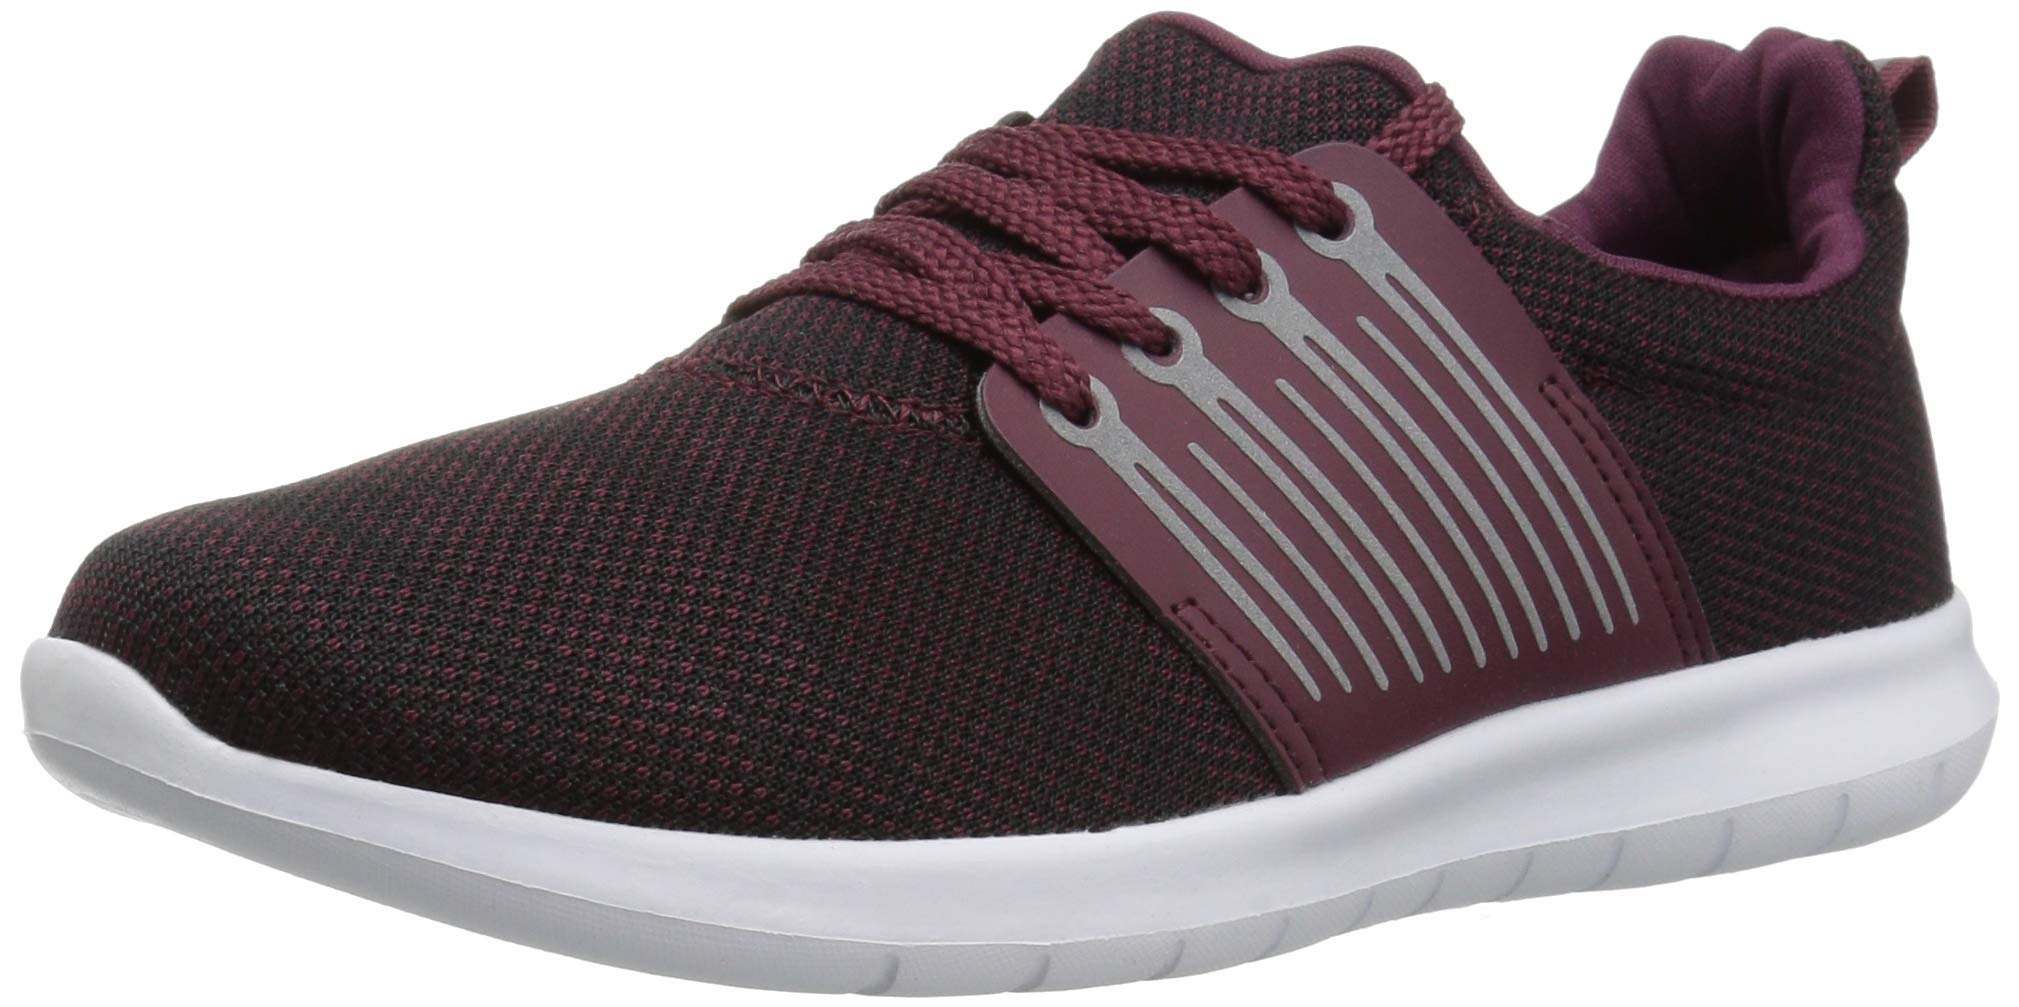 The Children's Place Boys' Athletic Sneaker, Redwood, Youth 13 Child US Little Kid